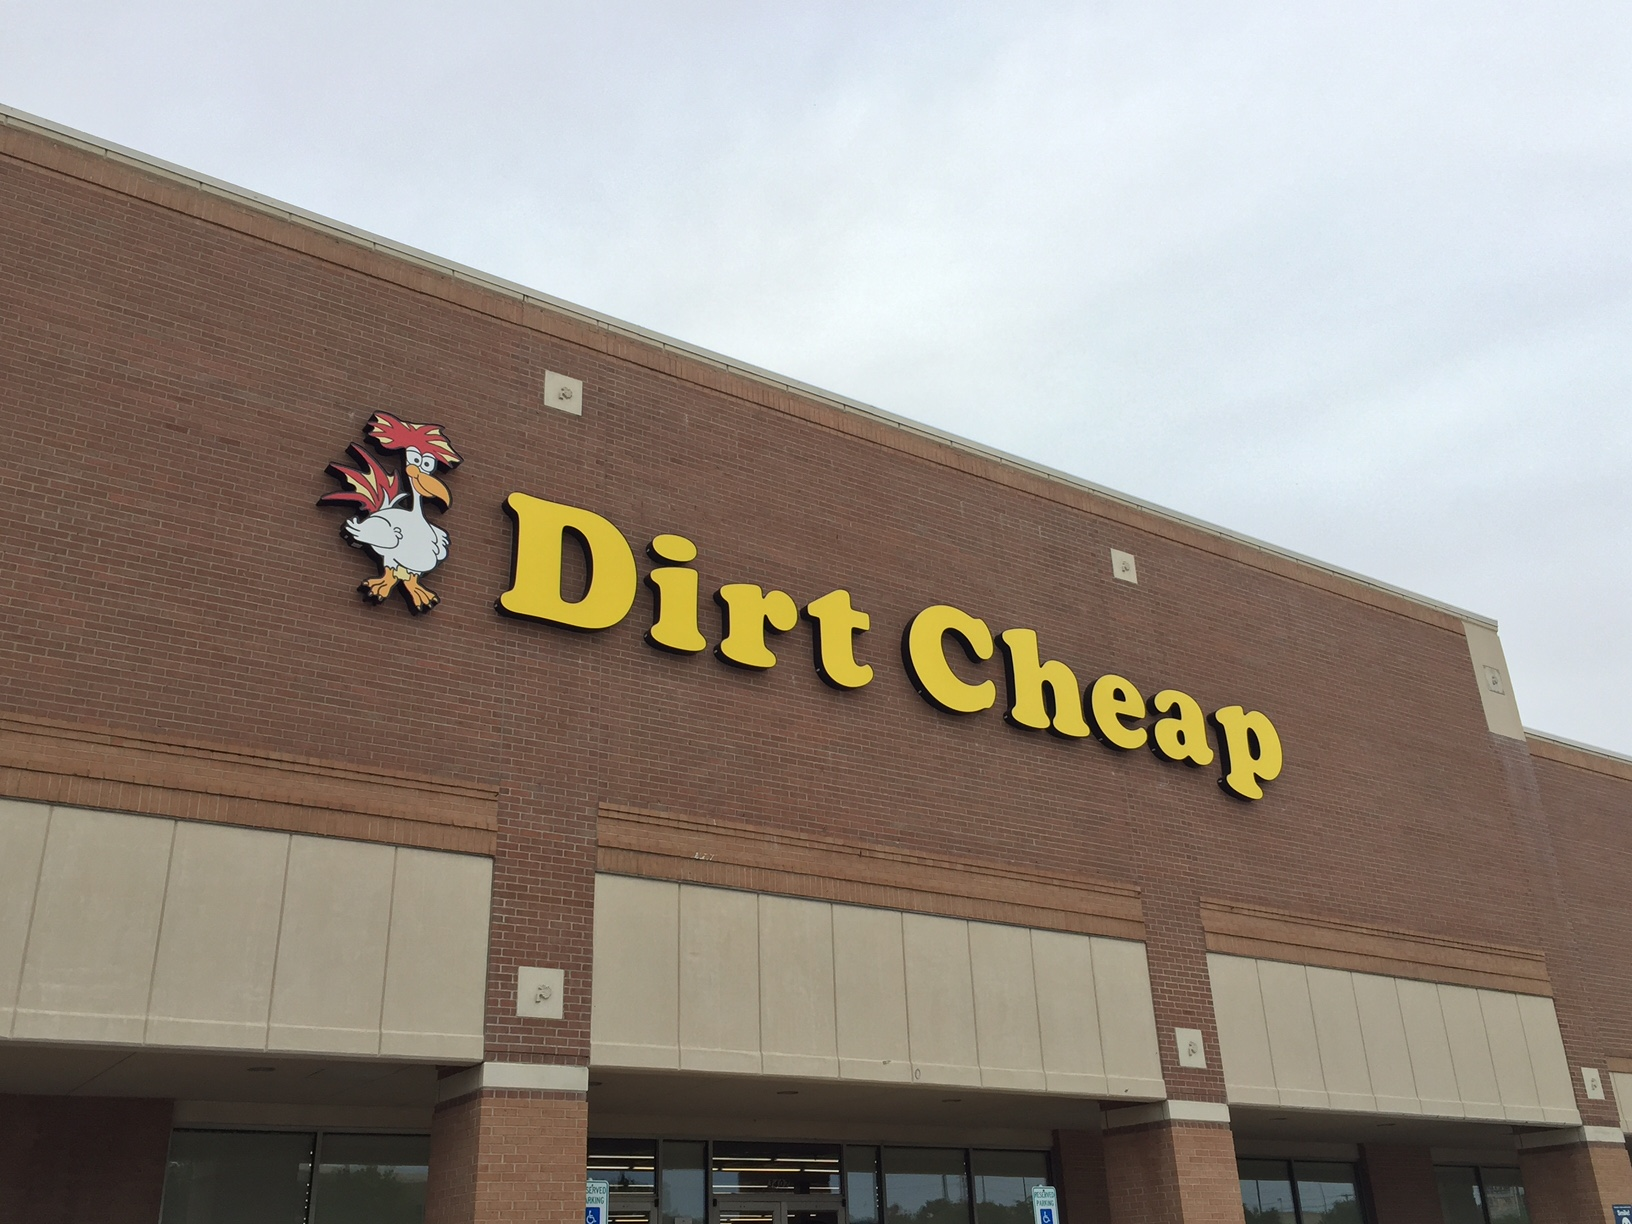 Carrollton Dirt Cheap